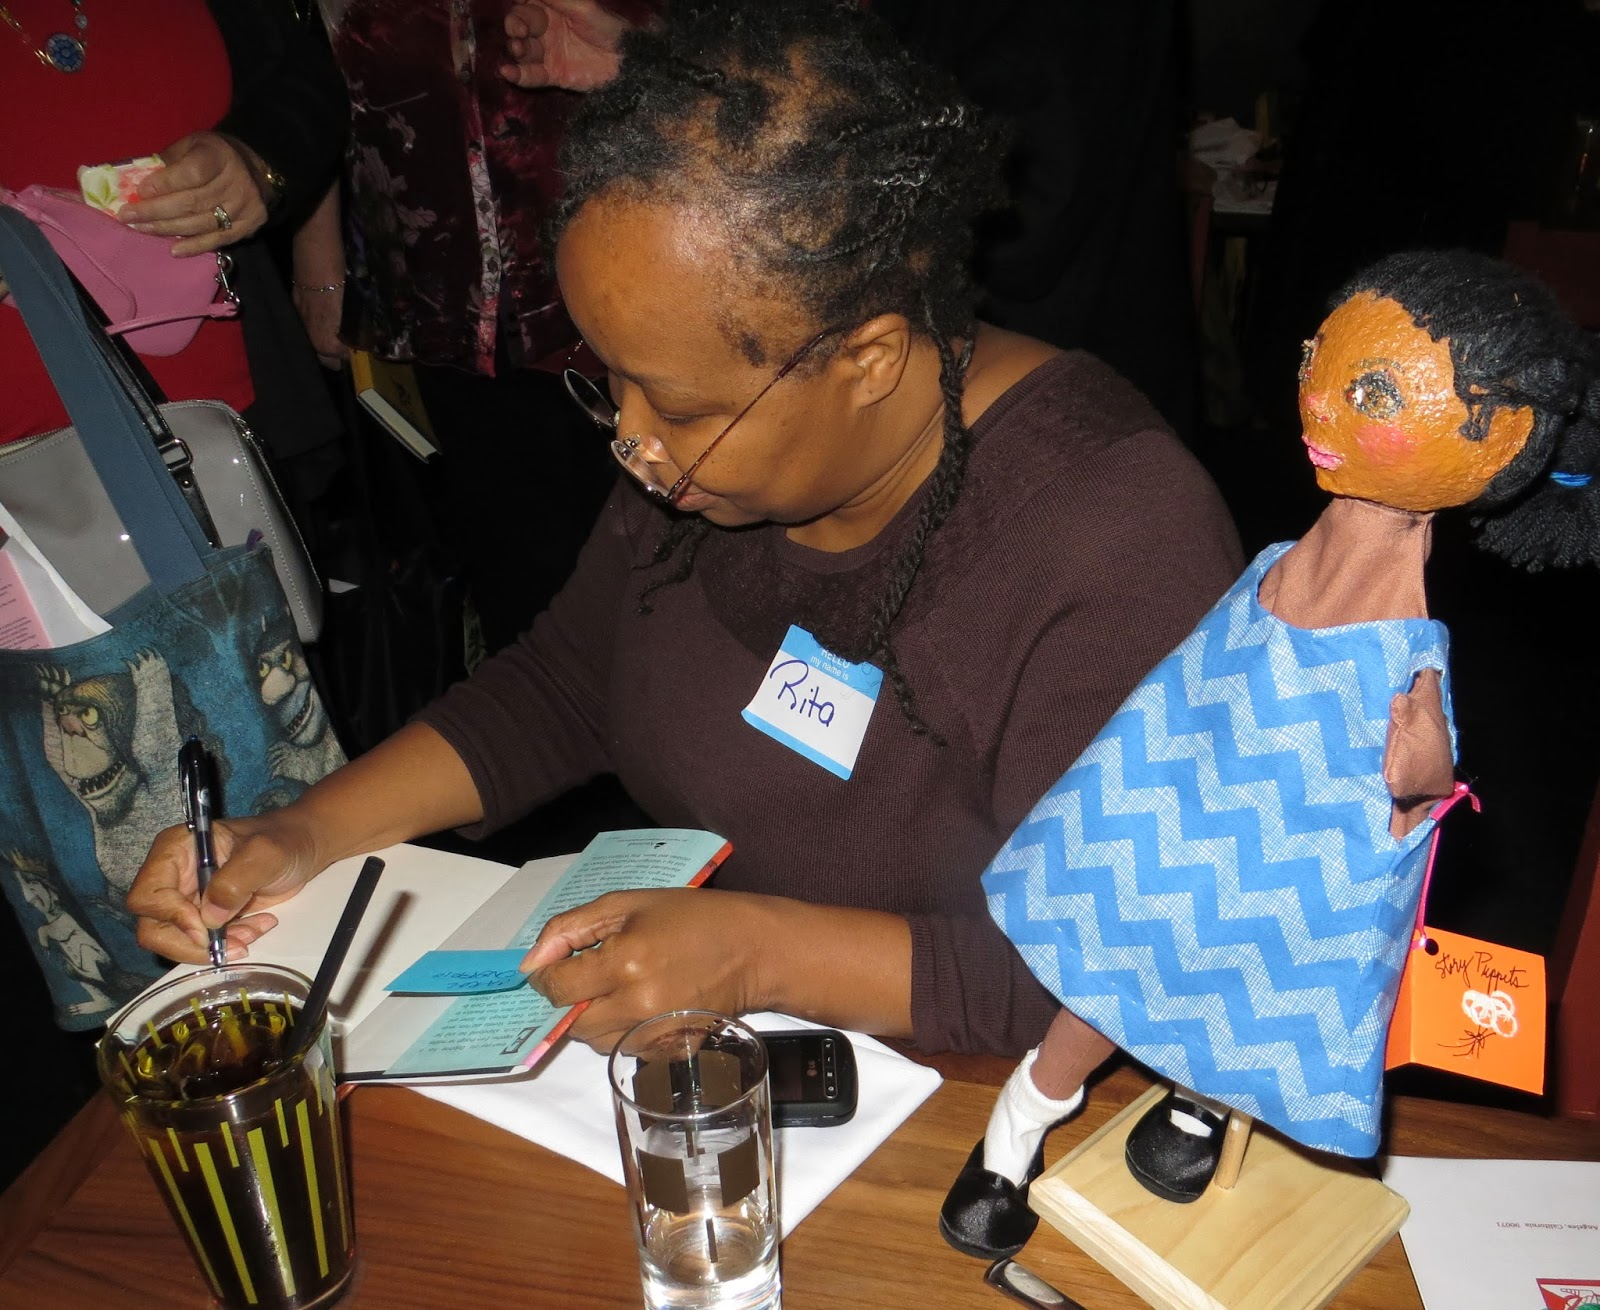 Rita Autographing A Book And Puppet